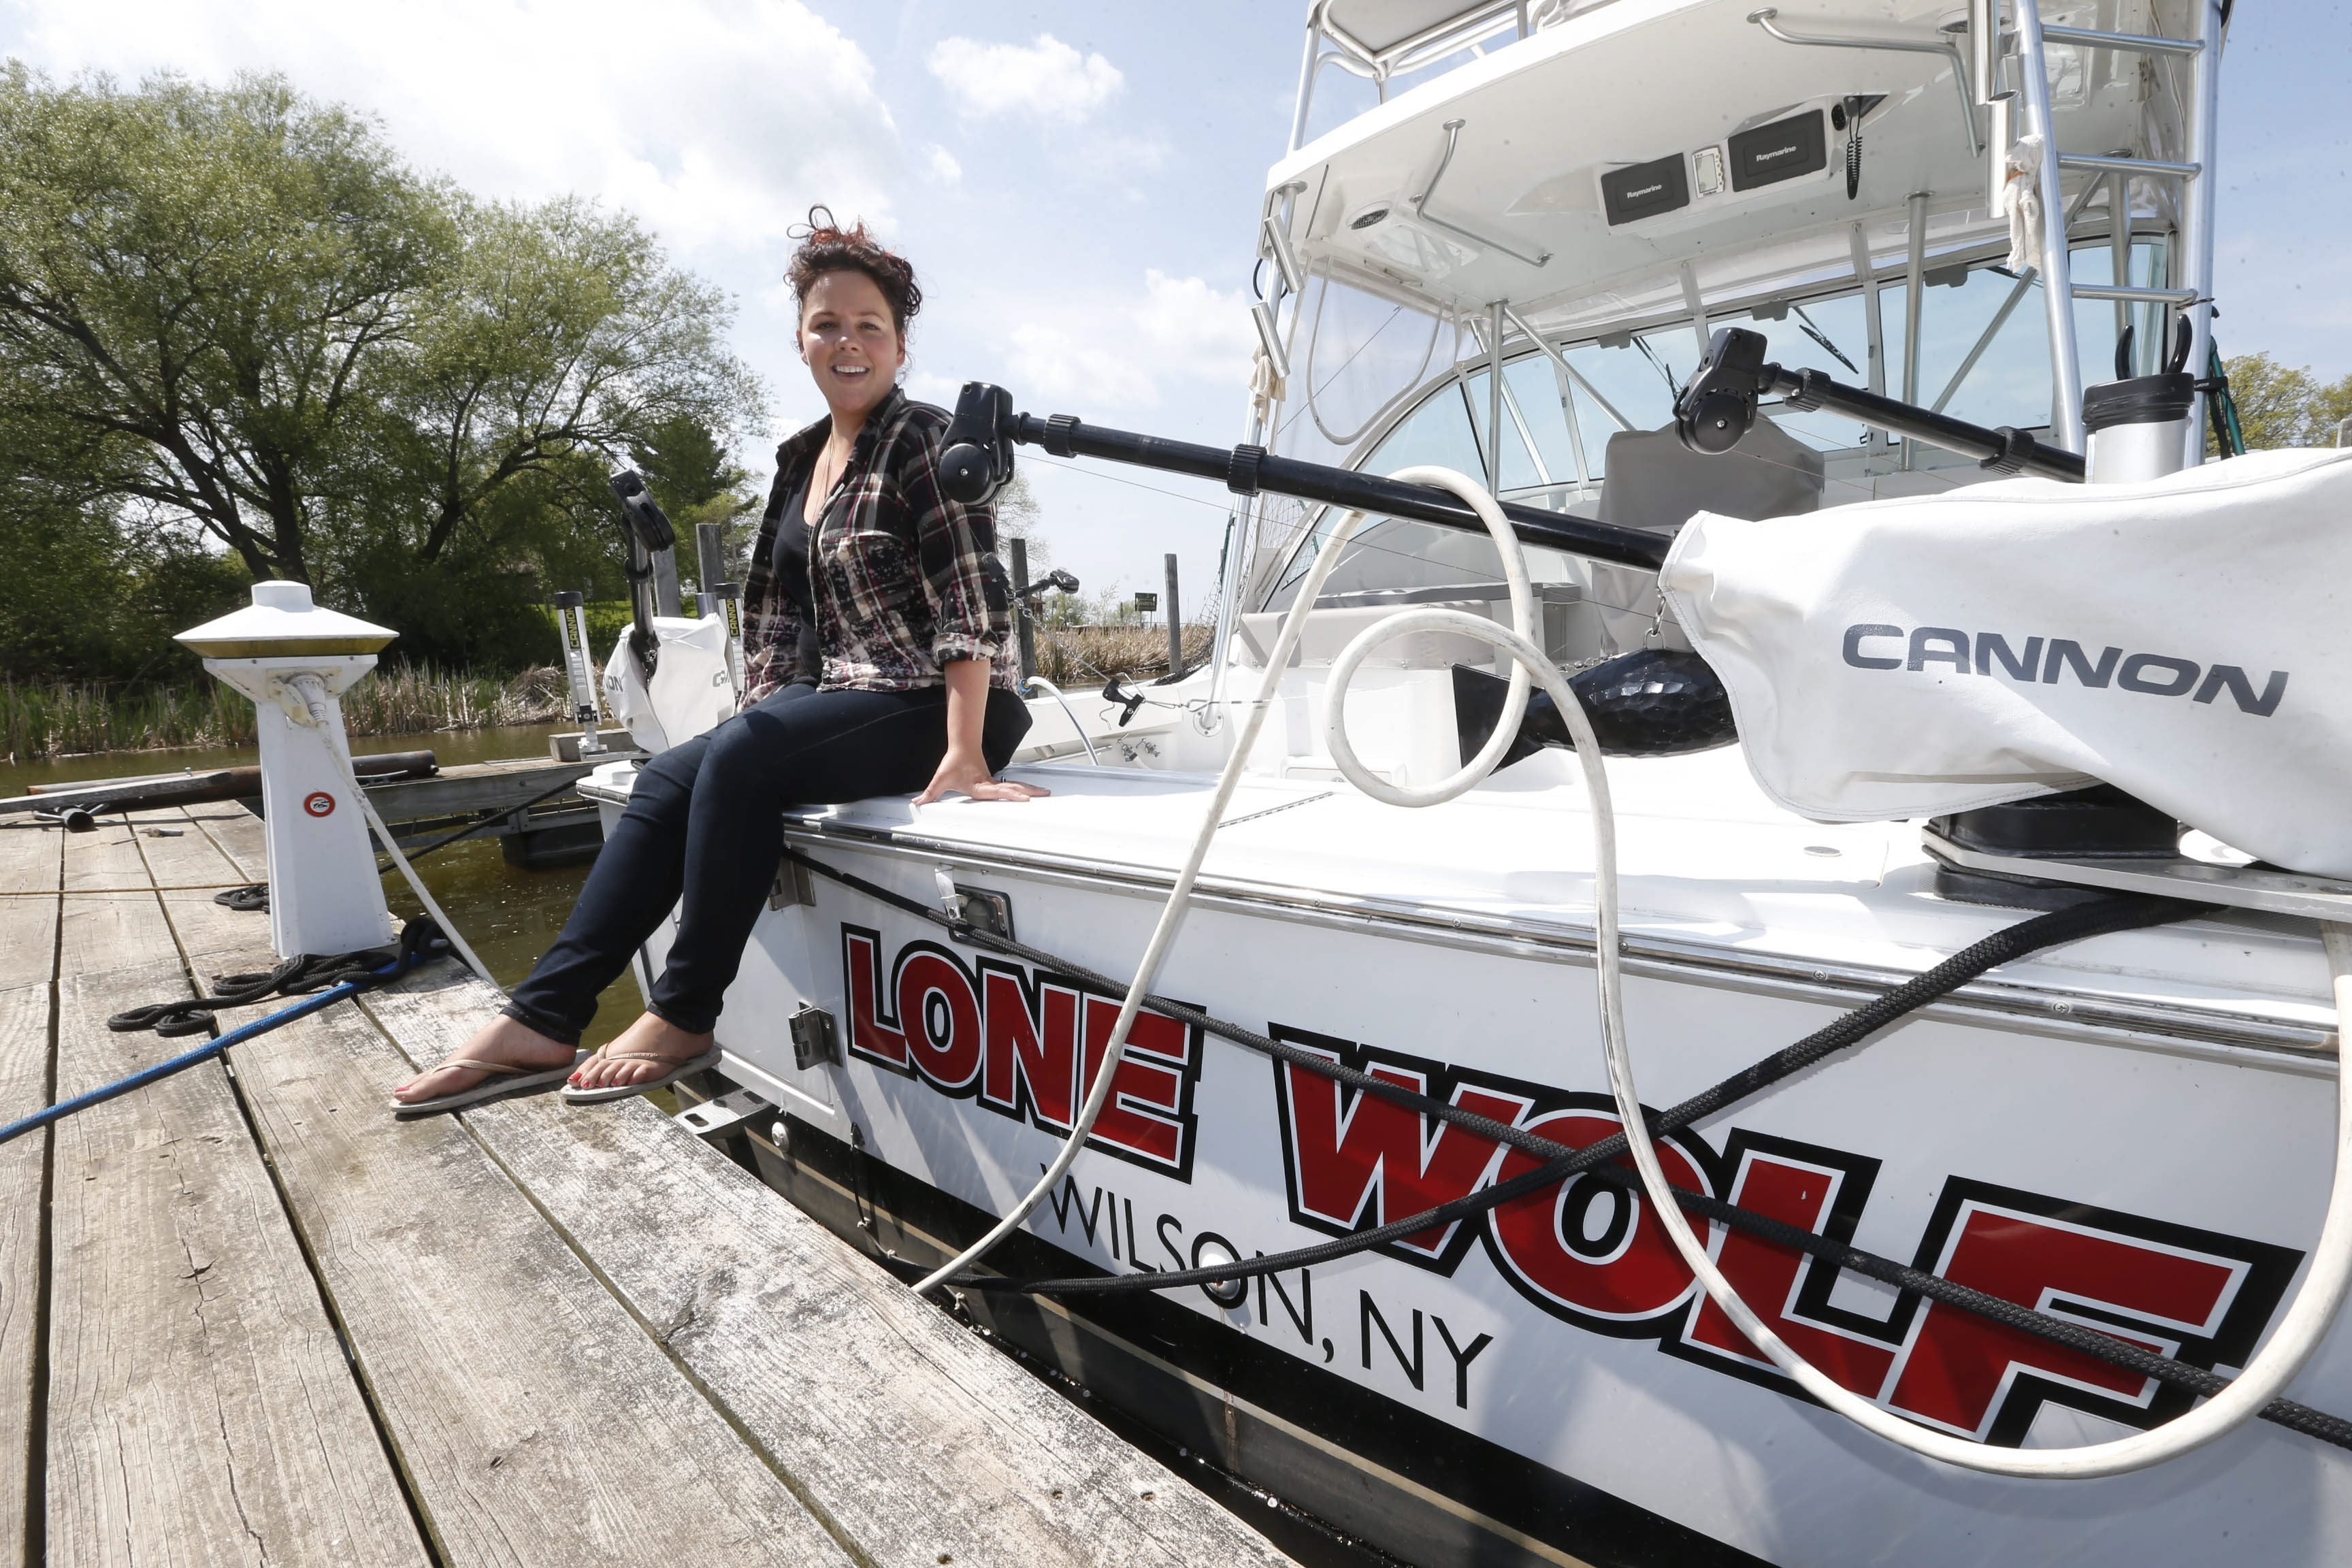 Michelle Evans, who owns the Sunset Bar and Grill and Wilson Boat House with her husband, takes a break at the marina they also own on Monday.